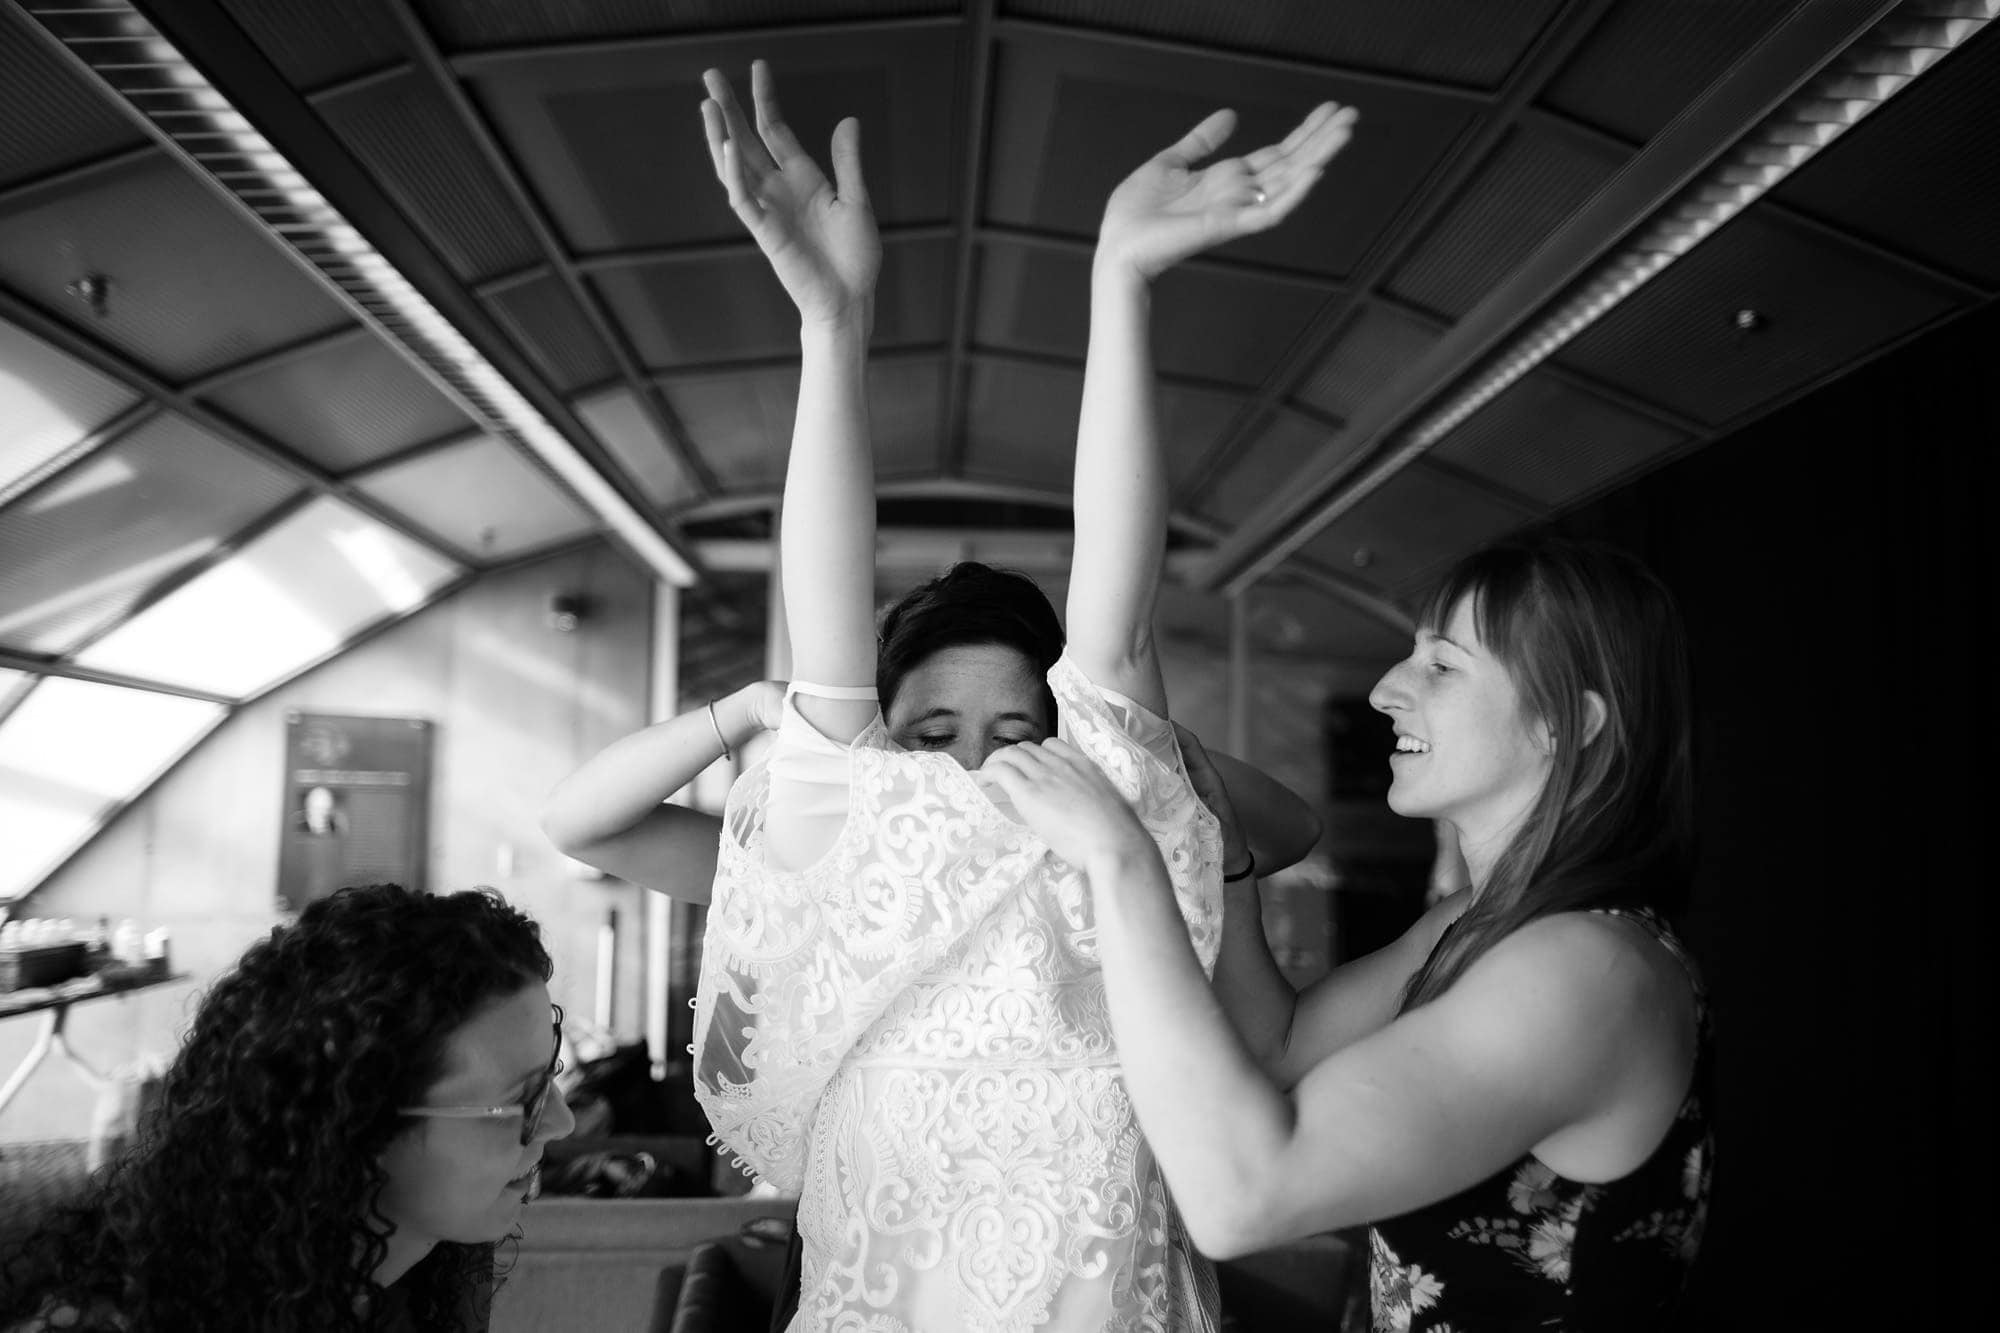 Amanda gets help putting on her dress in the bridal suite